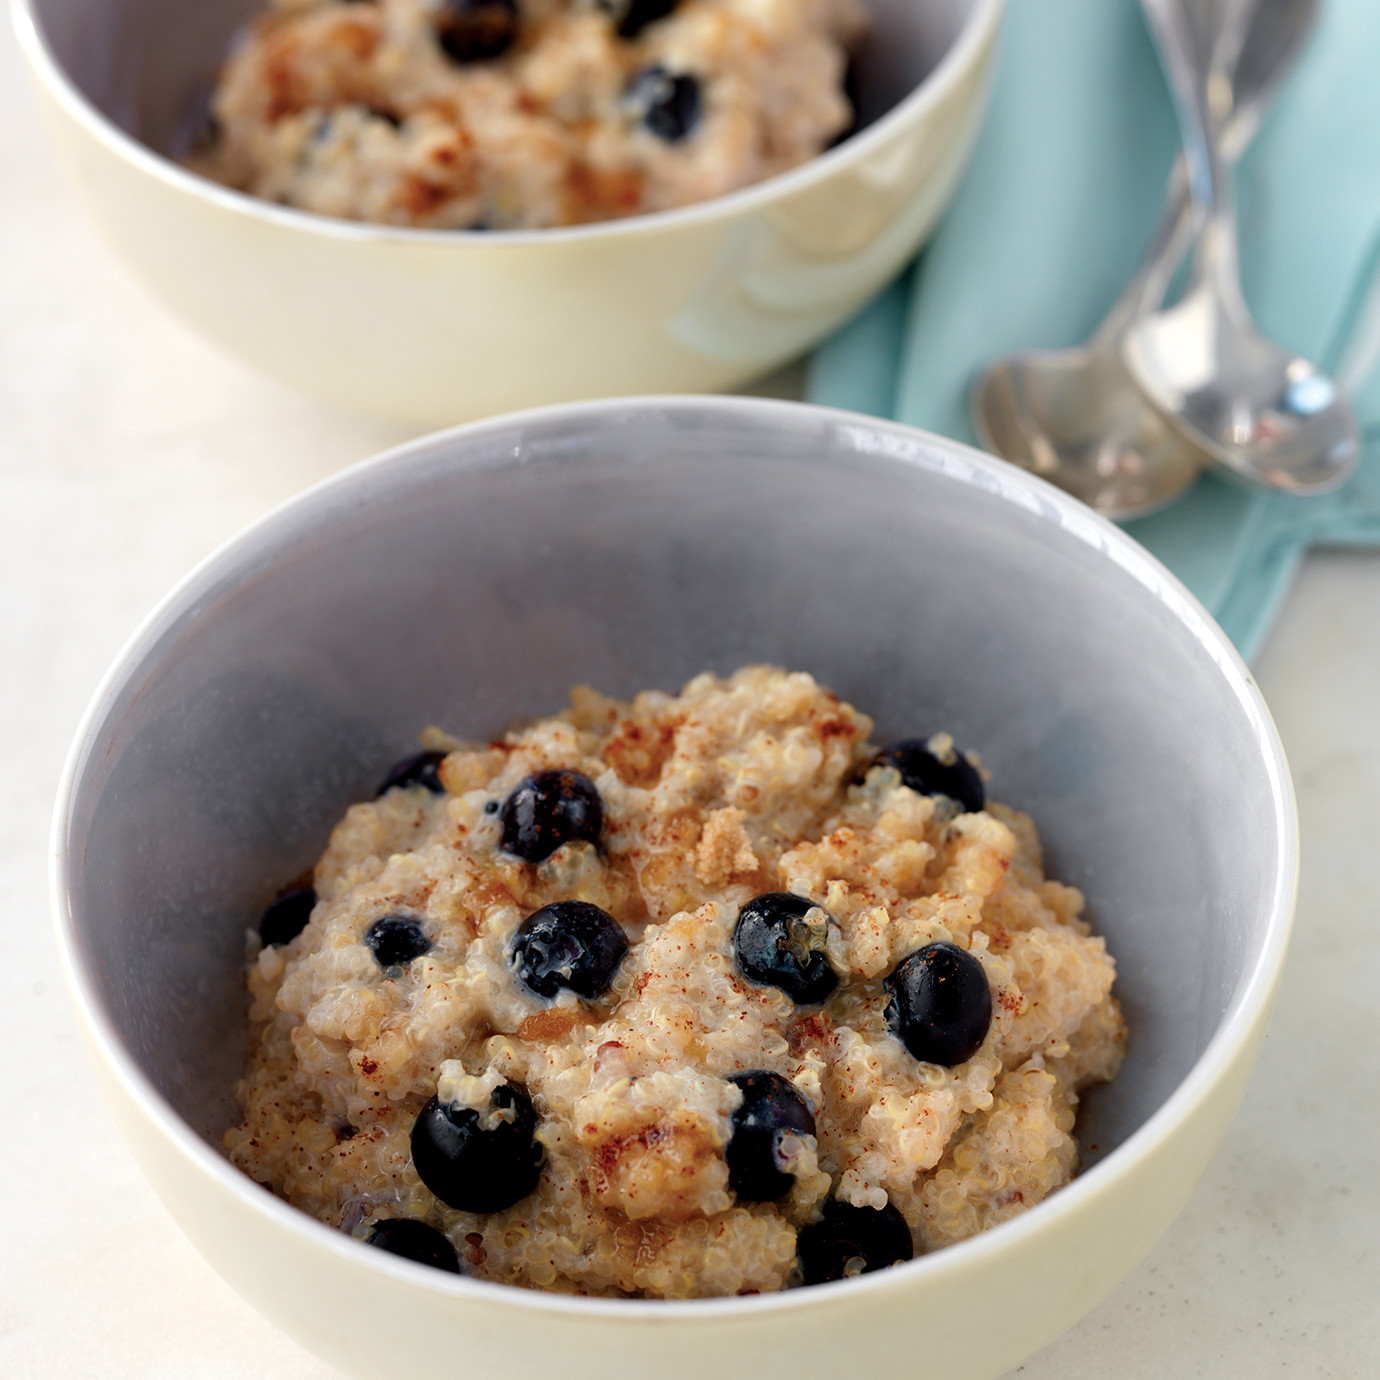 Oatmeal And Other Hot Cereal Recipes Martha Stewart